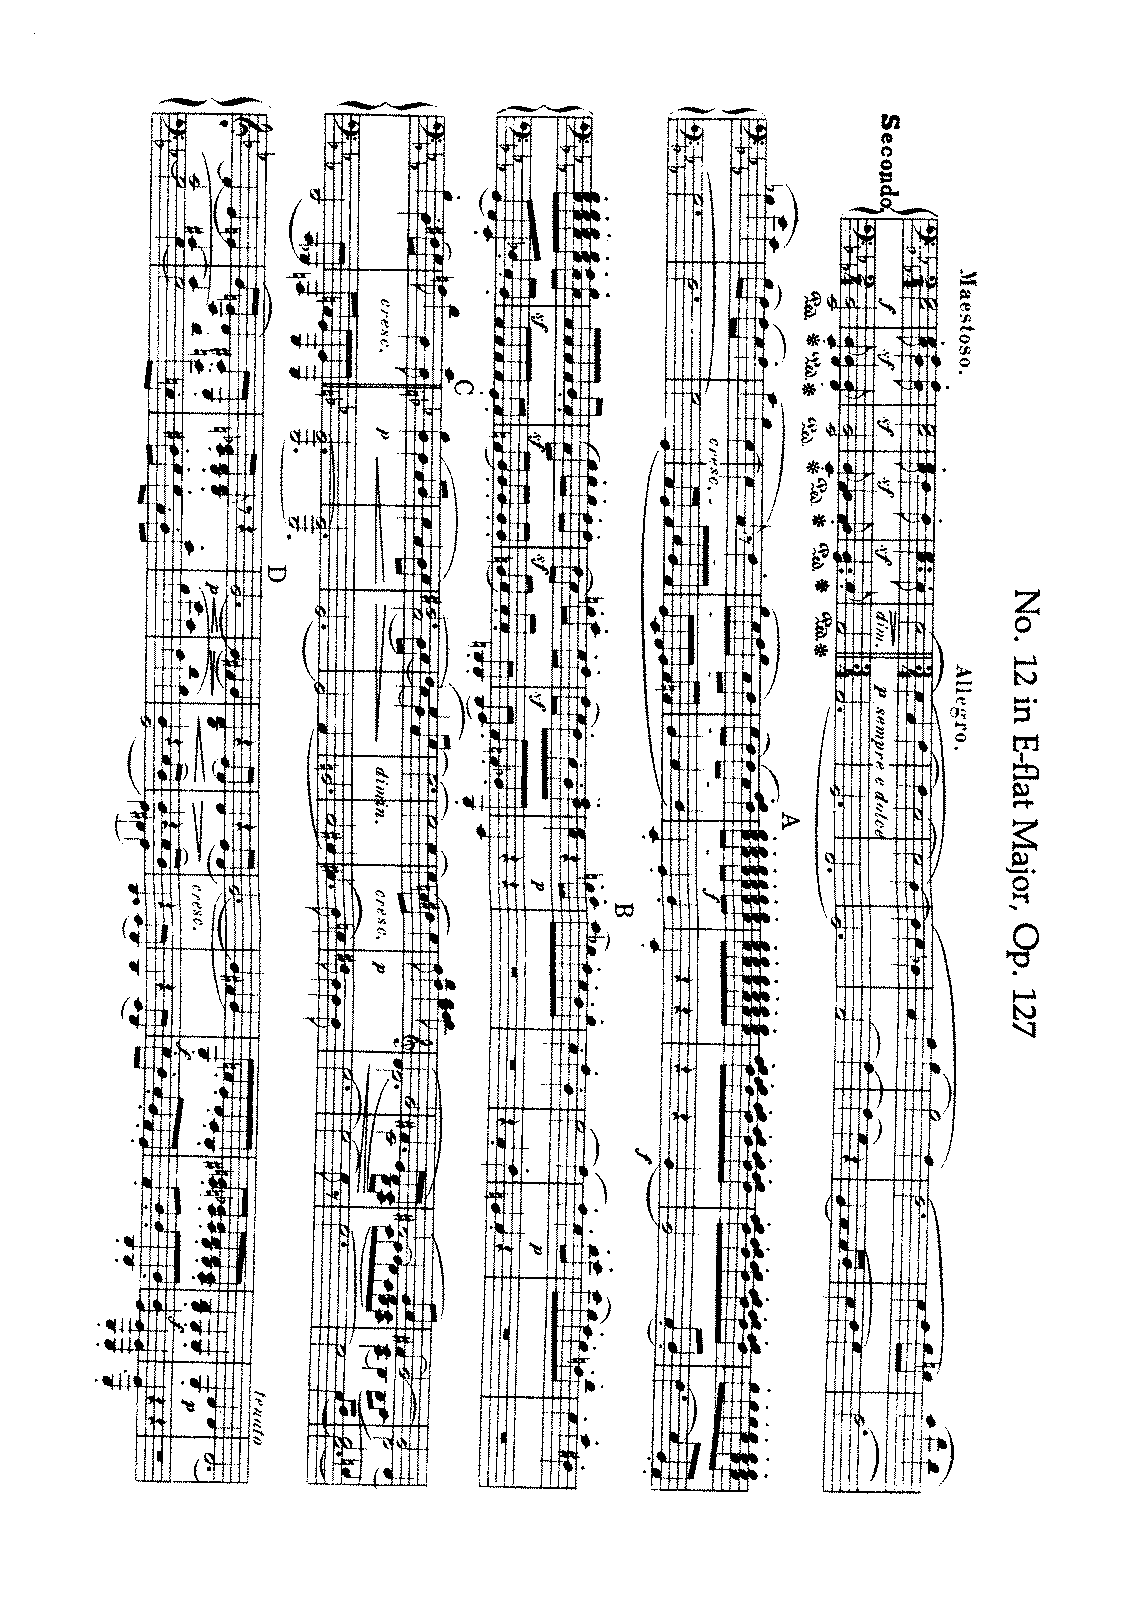 Beethoven - String Quartet No. 12 (Arr. for Piano 4 h.).pdf